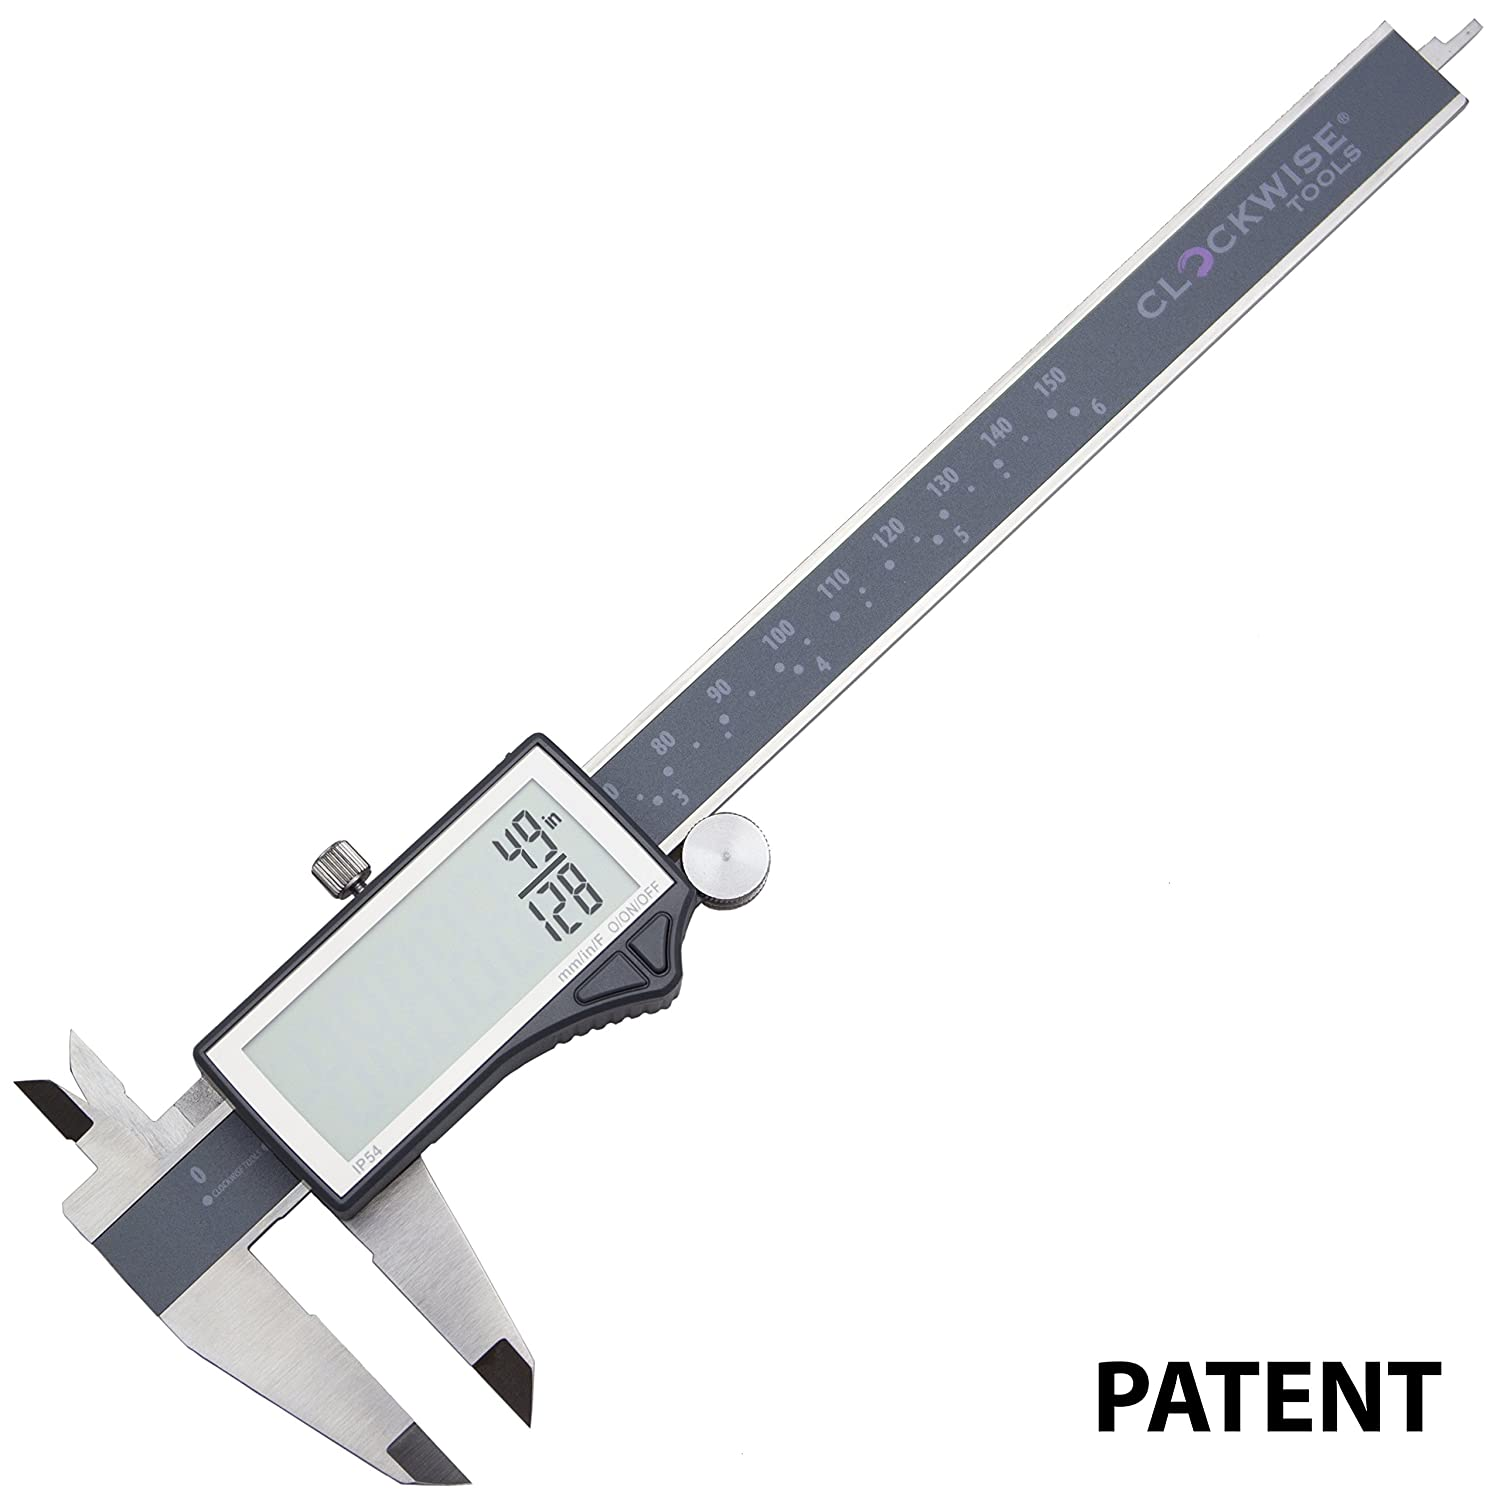 Amazon clockwise tools dclr 0605 electronic digital caliper amazon clockwise tools dclr 0605 electronic digital caliper inchmetric fractions conversion ip54 protection 0 6 inch150 mm stainless steel body super nvjuhfo Images